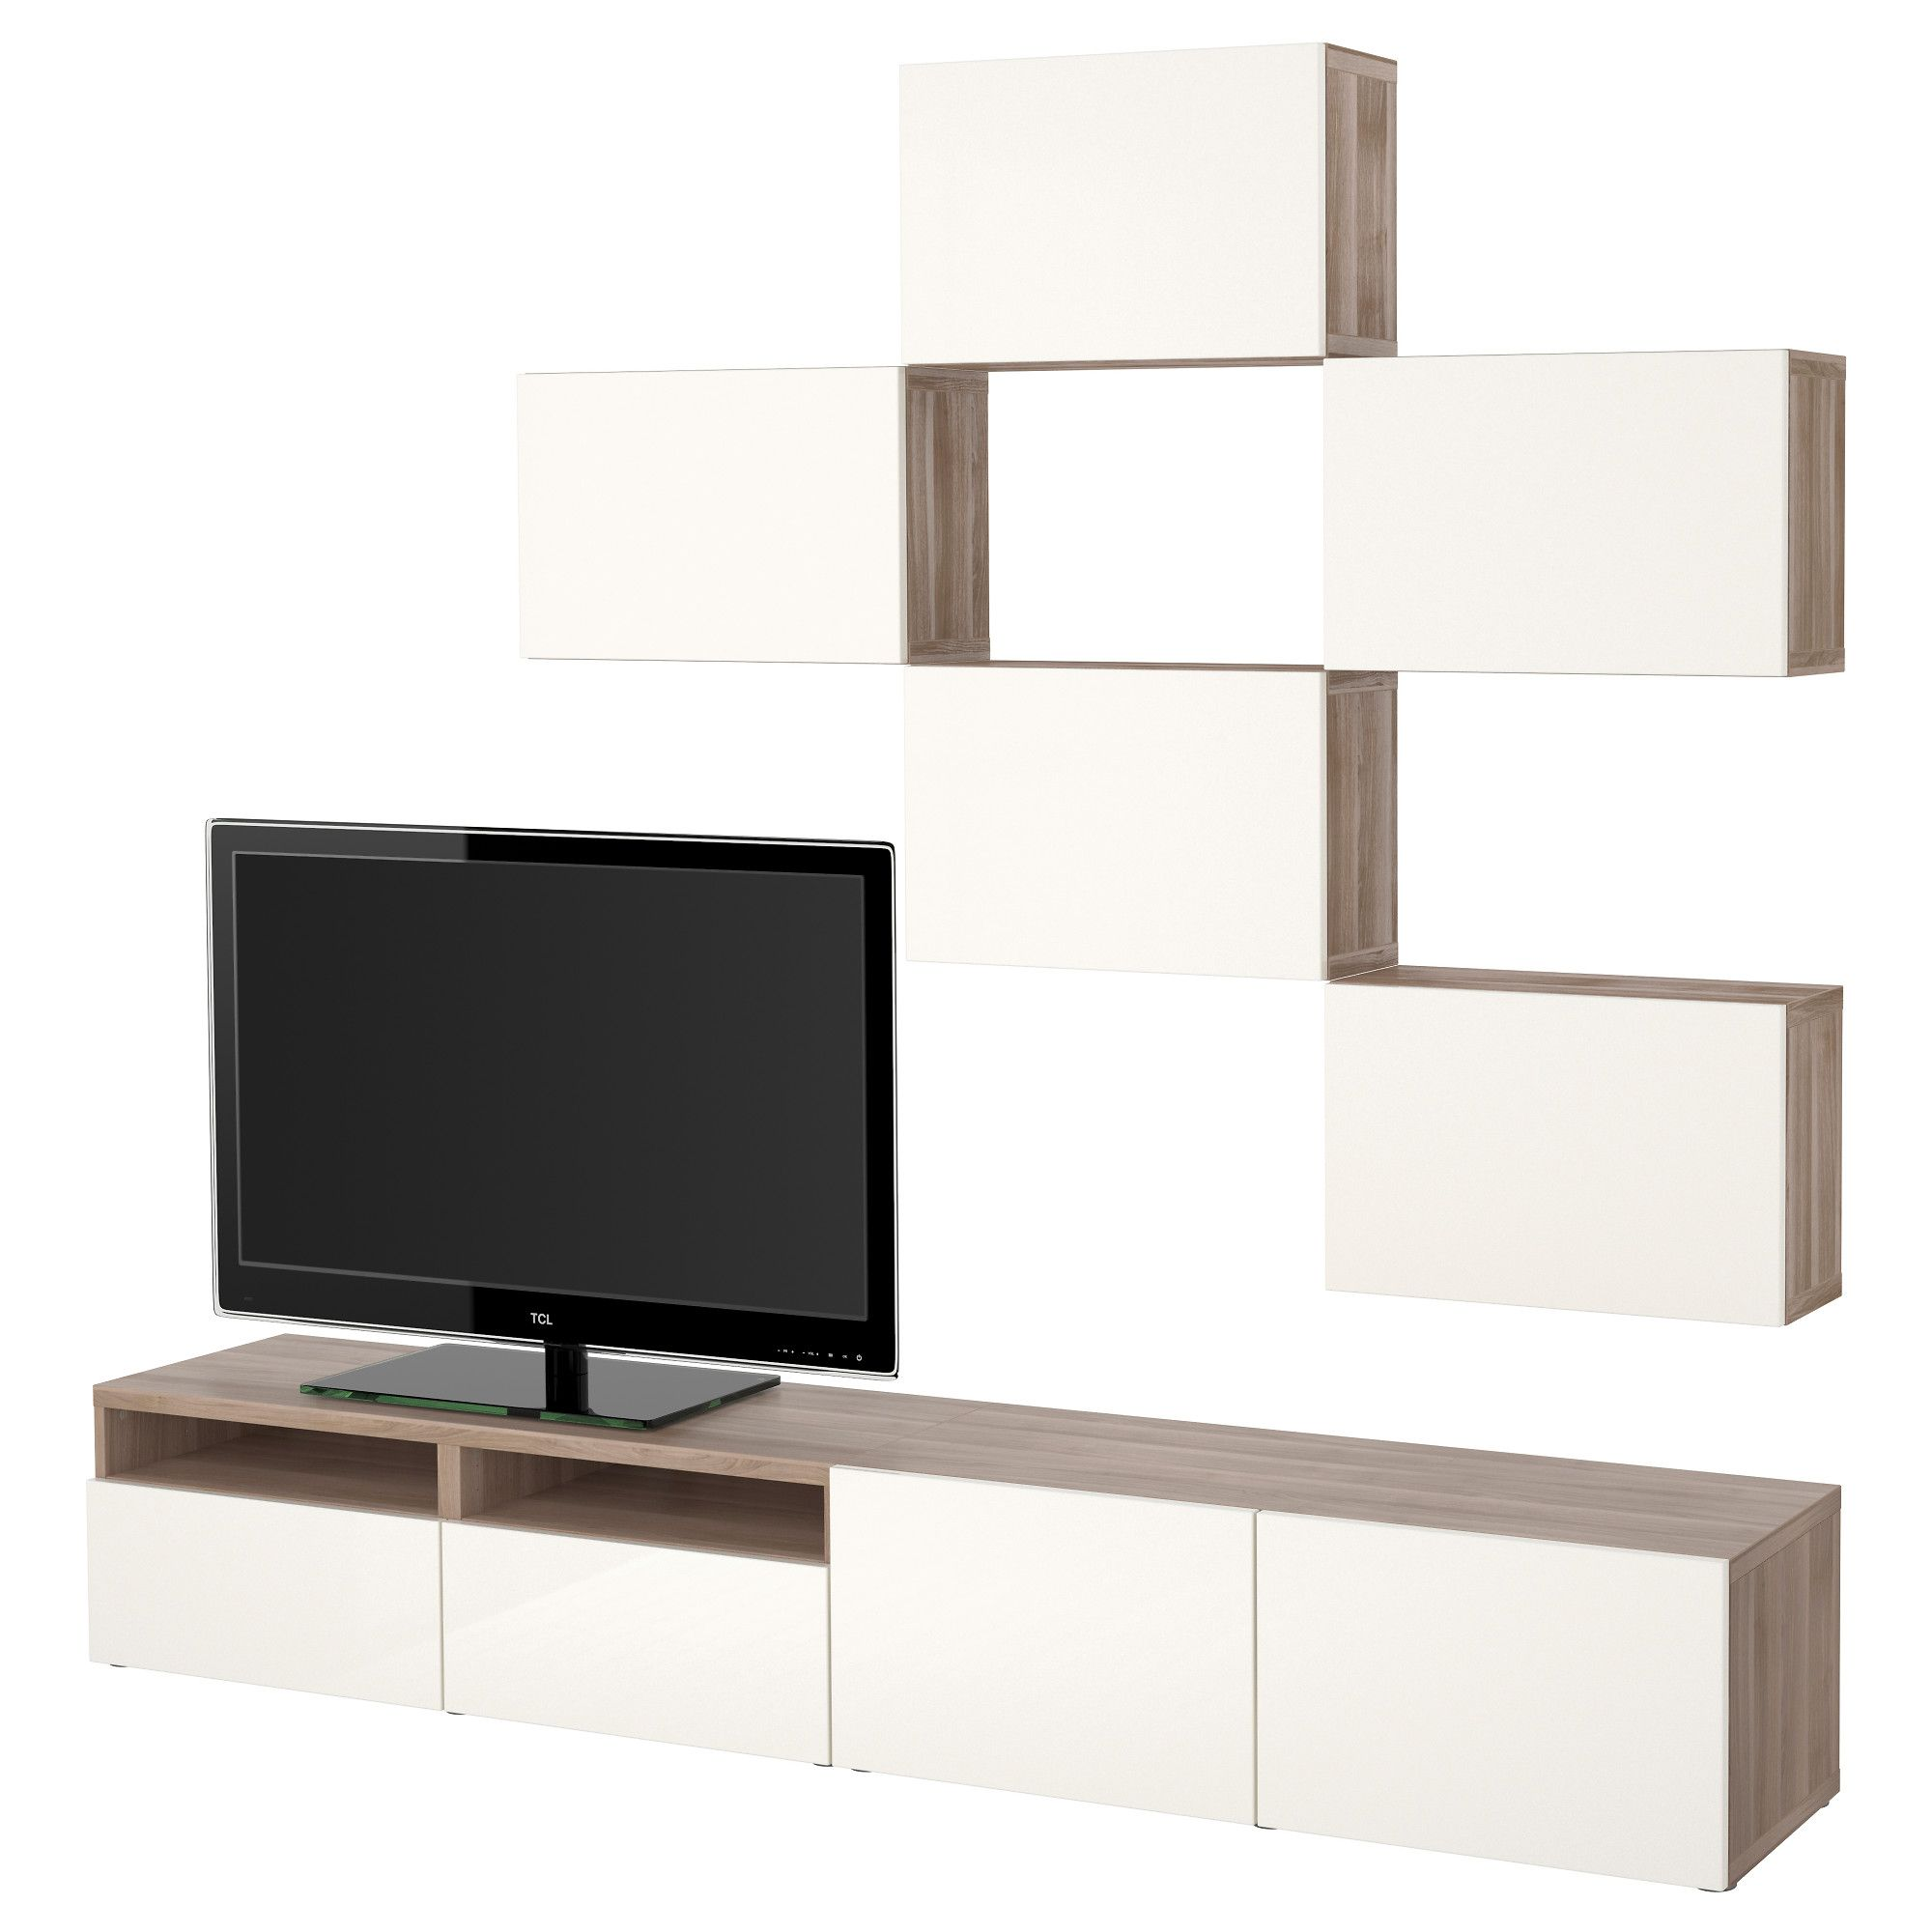 Tablette Besta Meuble Cache Tv Ikea Ikea Hack Meuble Tv Besta Tablette